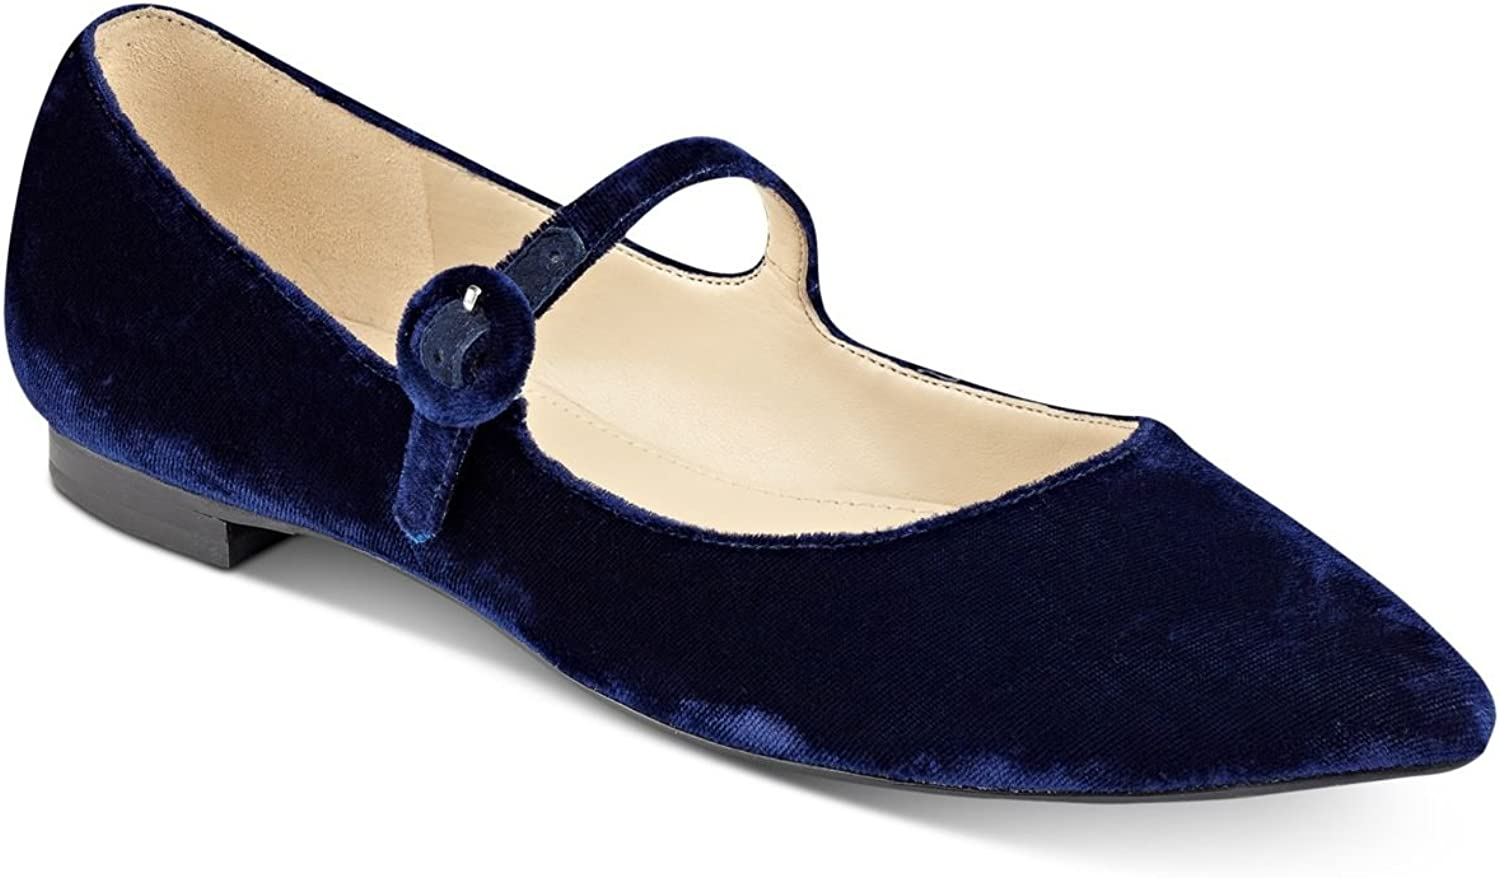 Marc Fisher Womens Stormy Pointed-Toe Ballet Flats Dark bluee